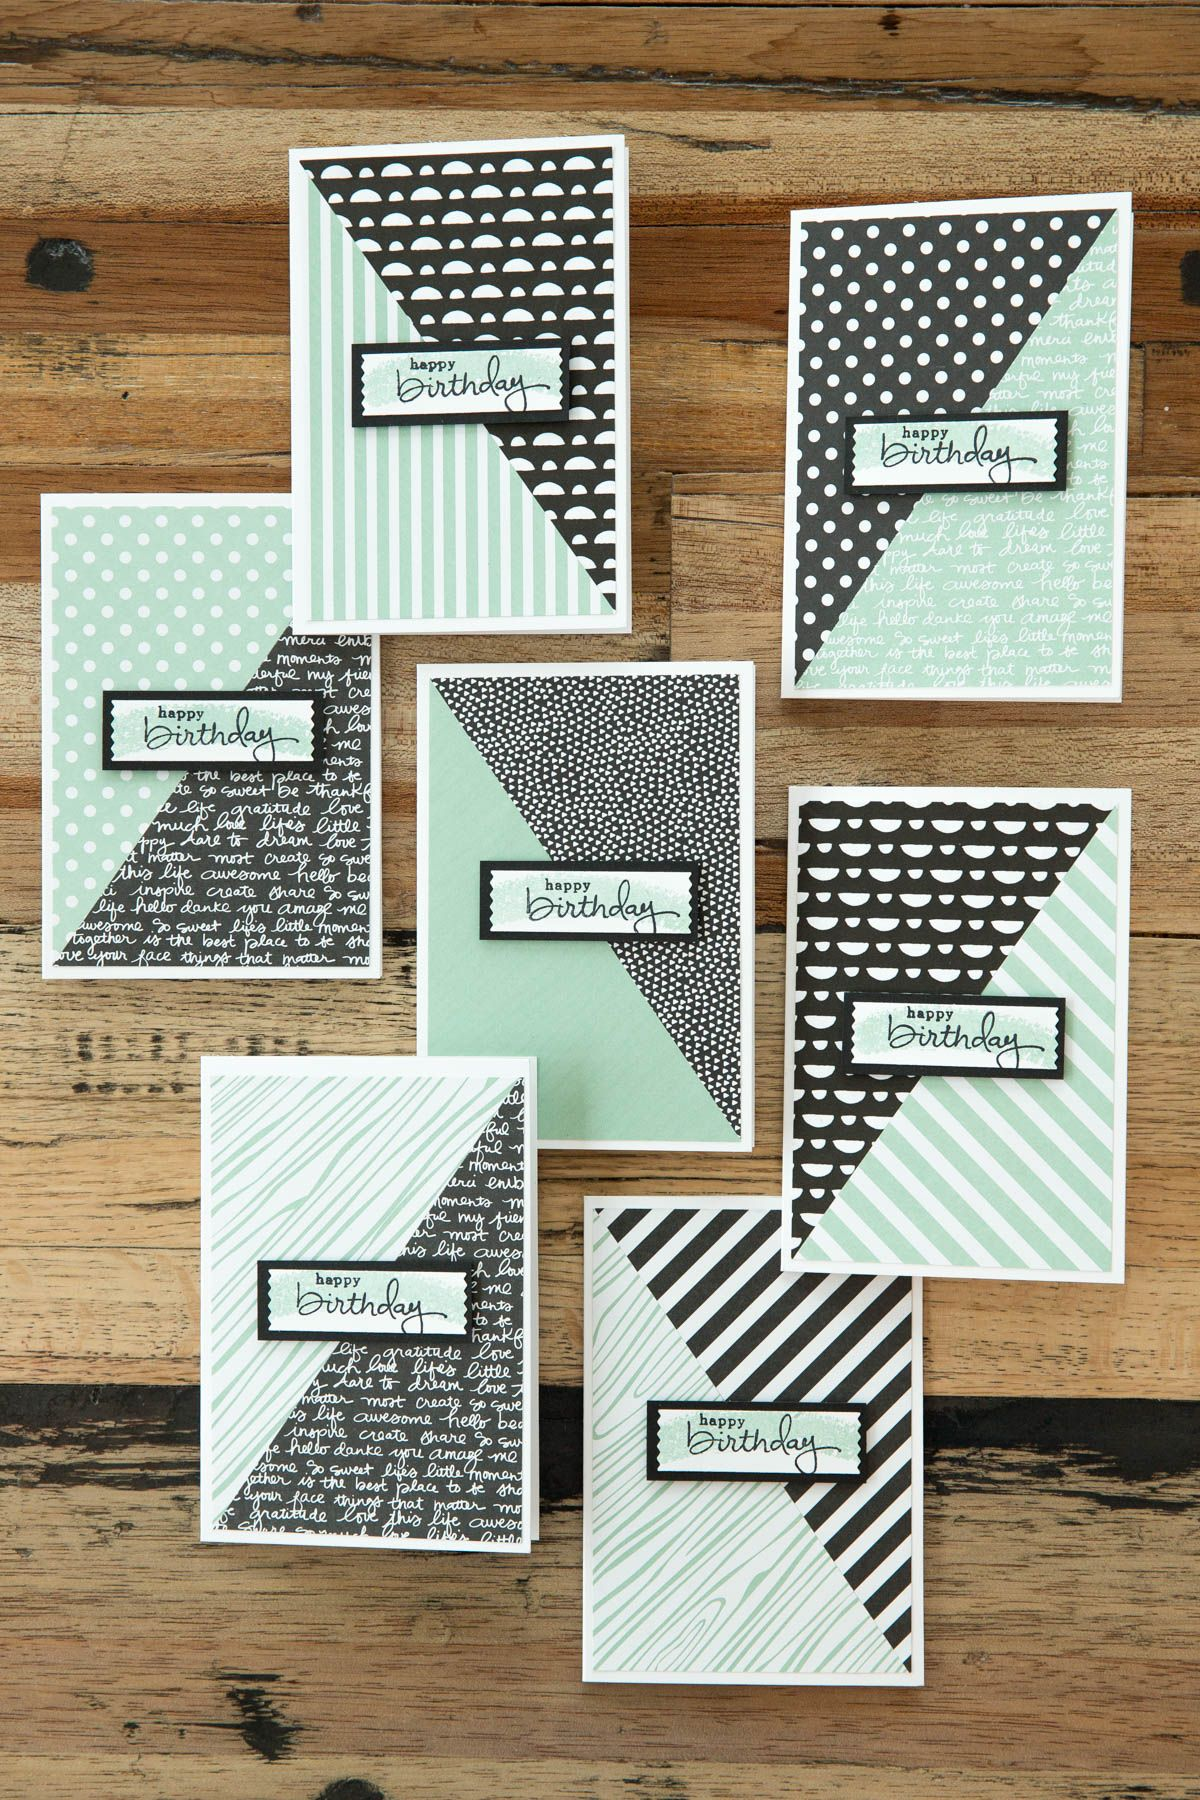 Super Simple Cards So Shelli Blog Simple birthday cards